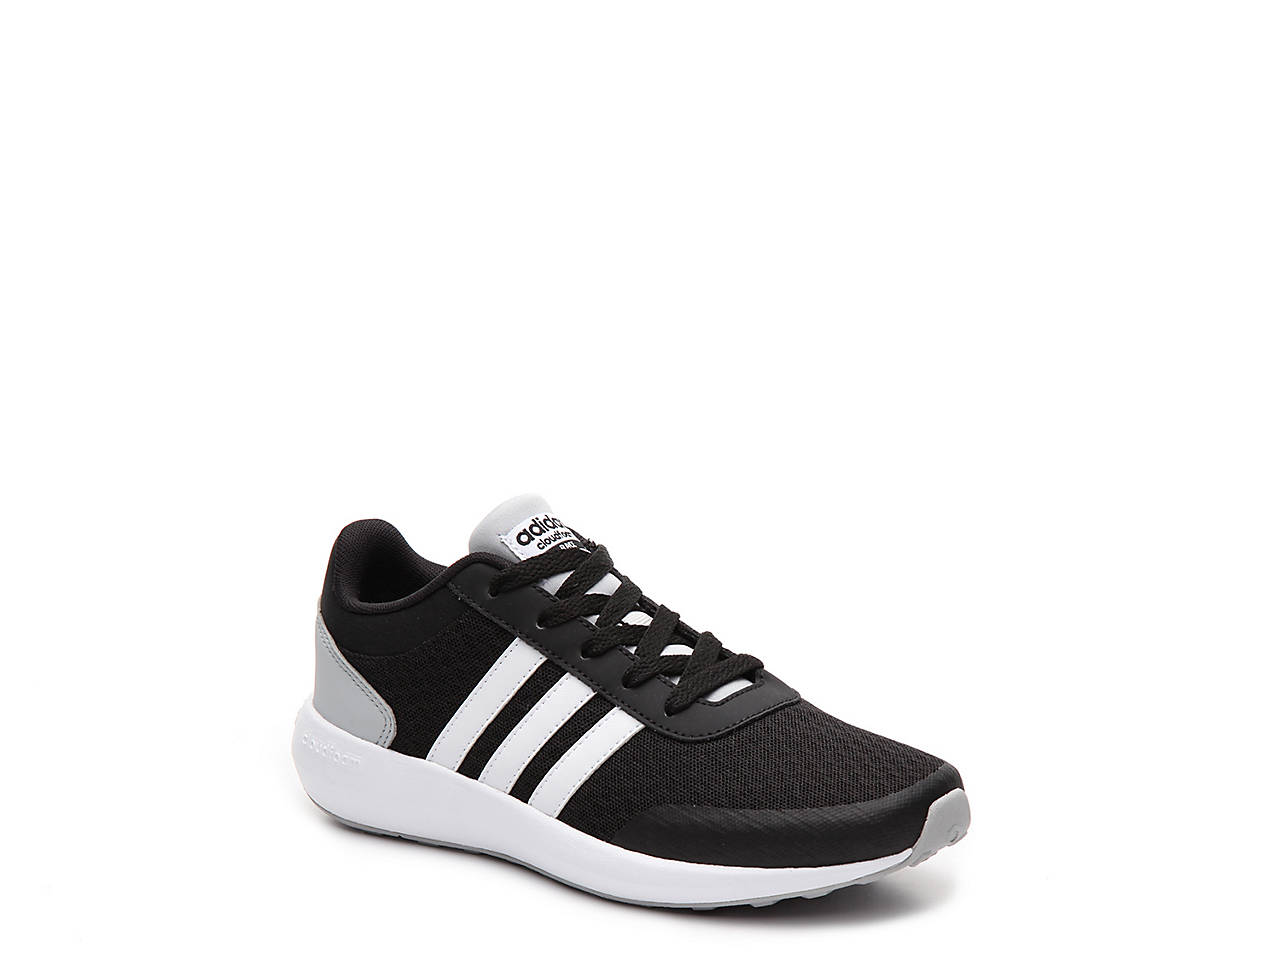 adidas cloudfoam race childrens trainers